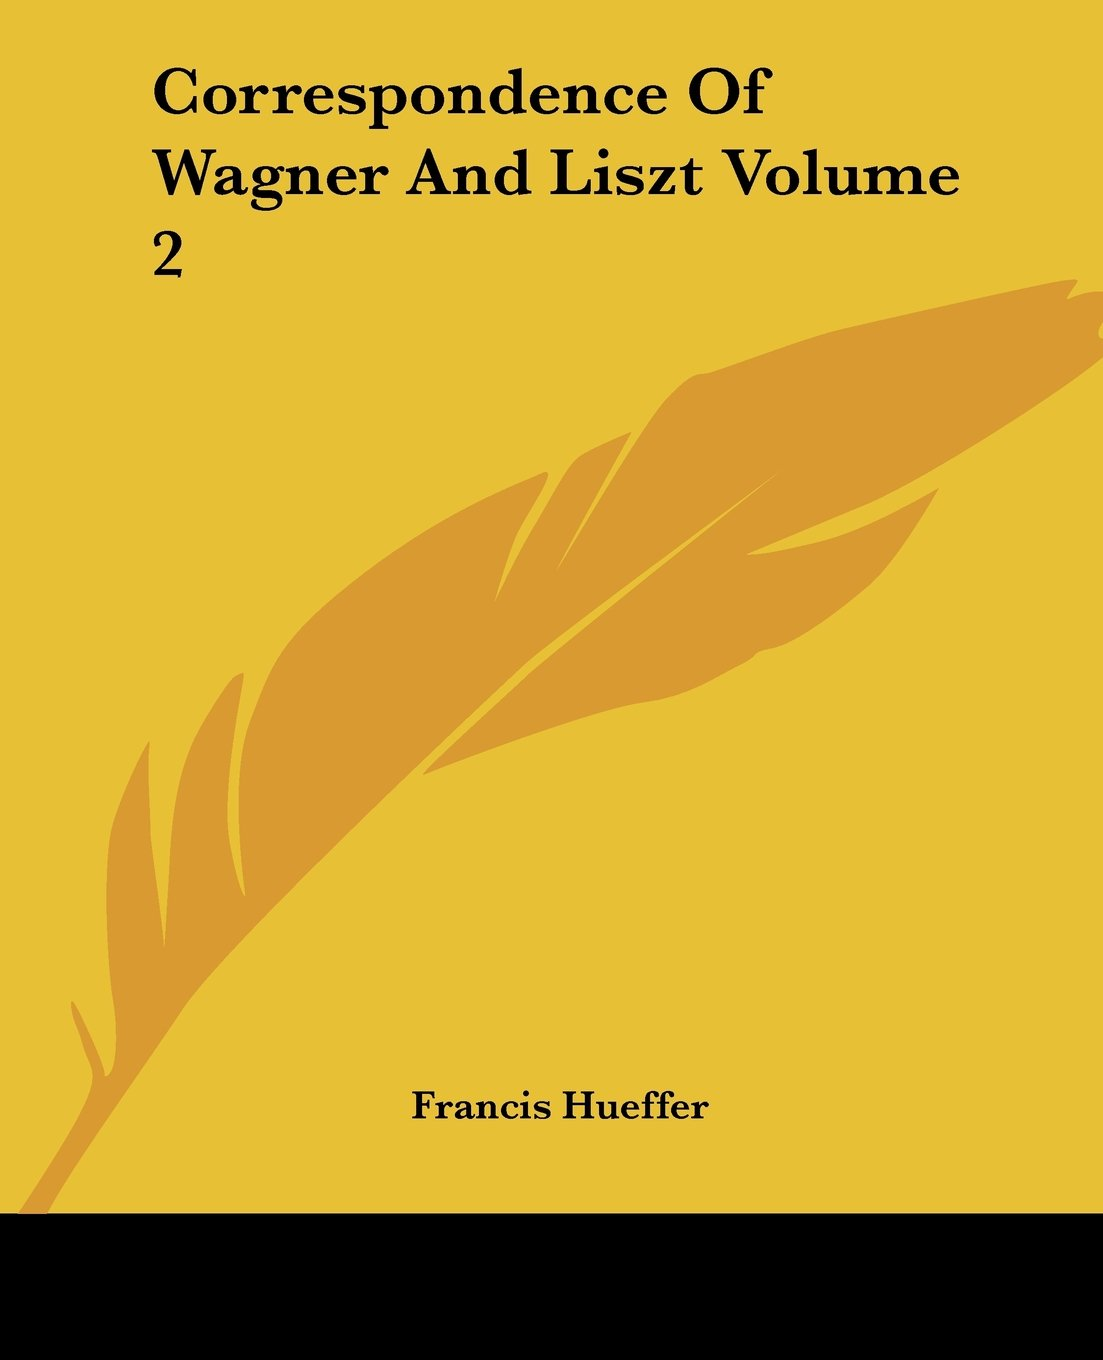 Correspondence Of Wagner And Liszt Volume 2 ebook